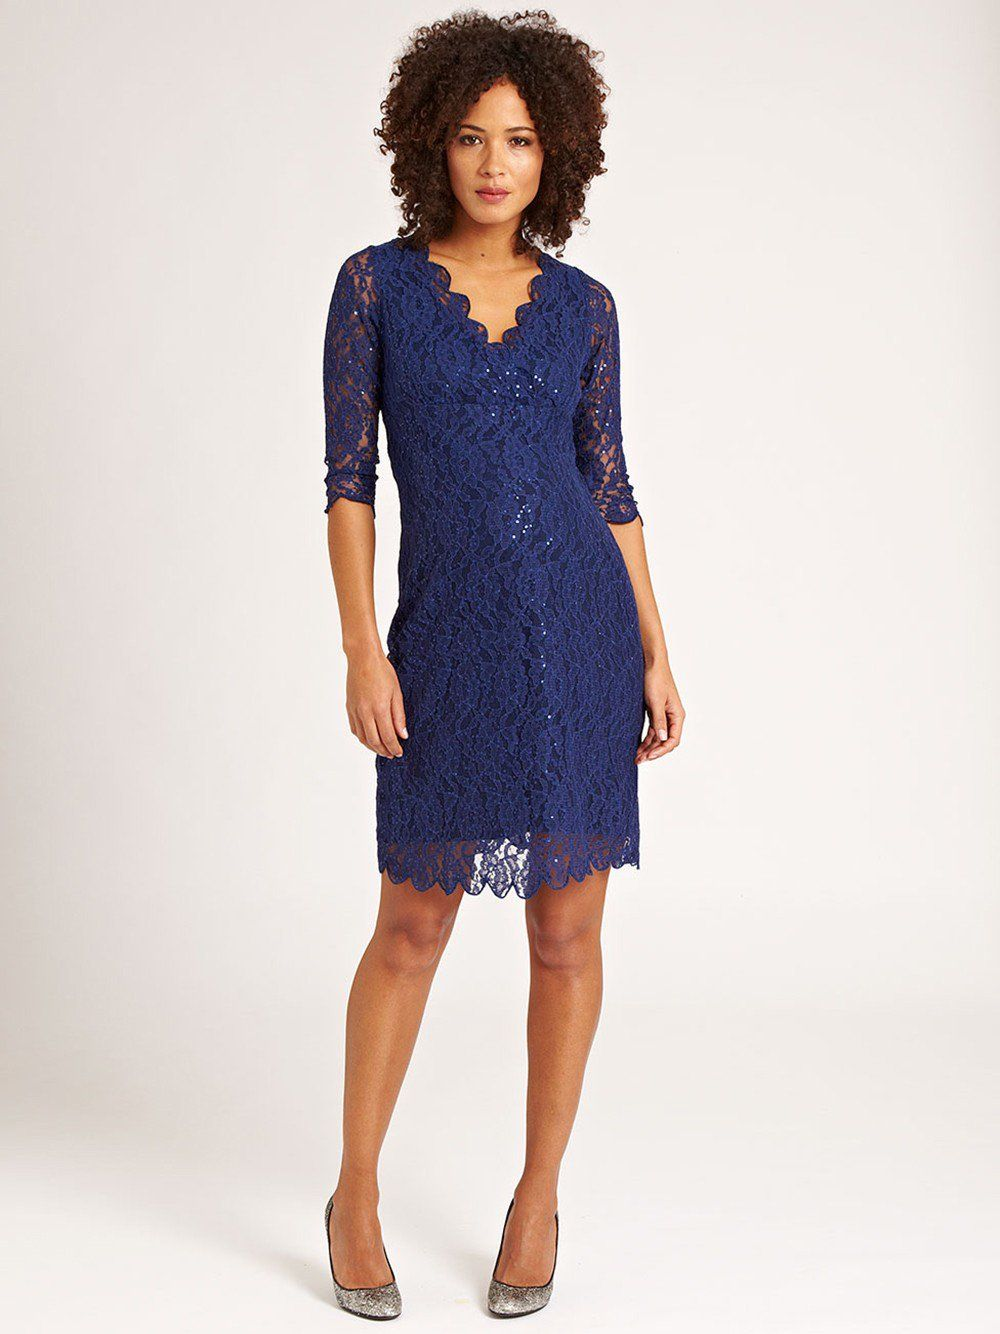 Navy lace maternity shift dress jojo maman bebe maternity a glamorous option for that special occasion the navy lace maternity shift dress makes a stunning style investment ombrellifo Image collections